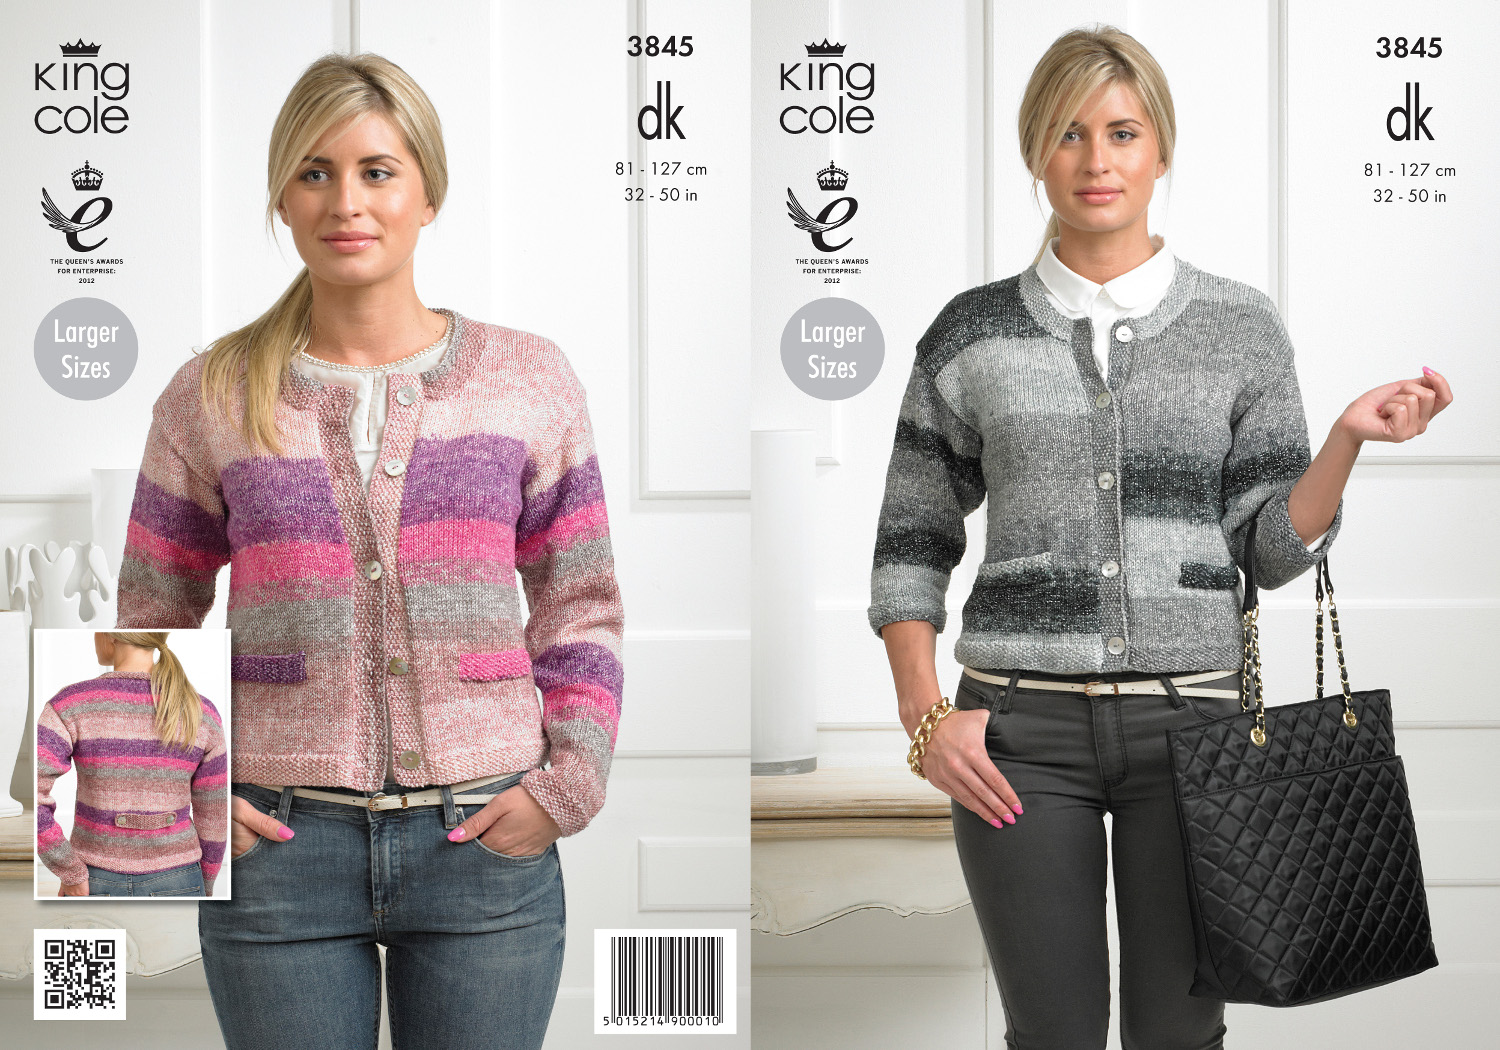 Knitting Jumper Pattern : Ladies double knitting pattern king cole shine dk womens striped